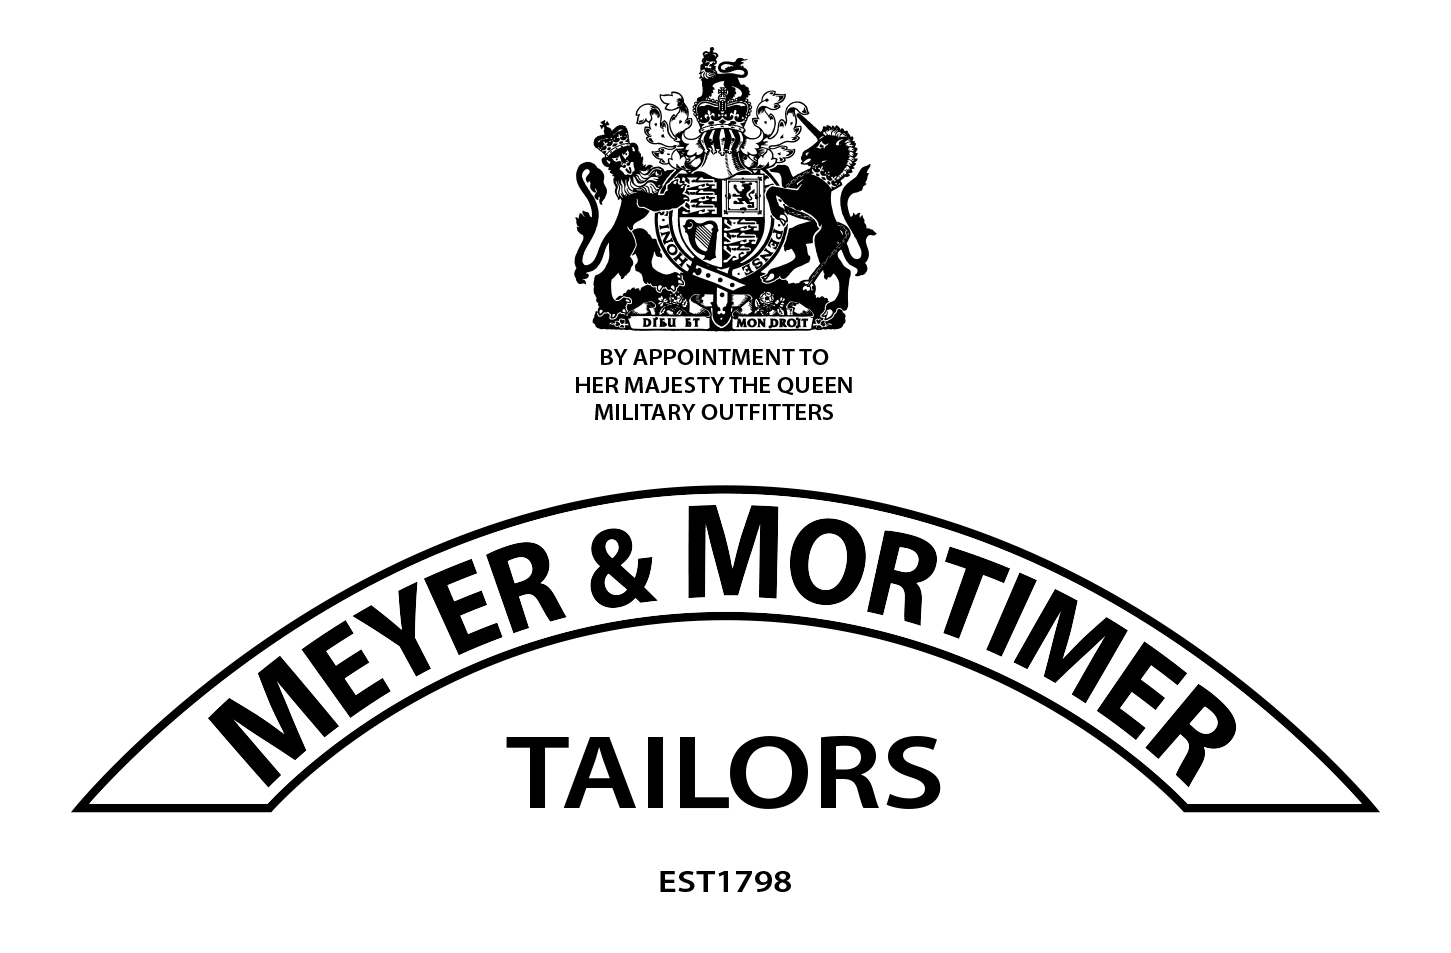 Meyer & Mortimer